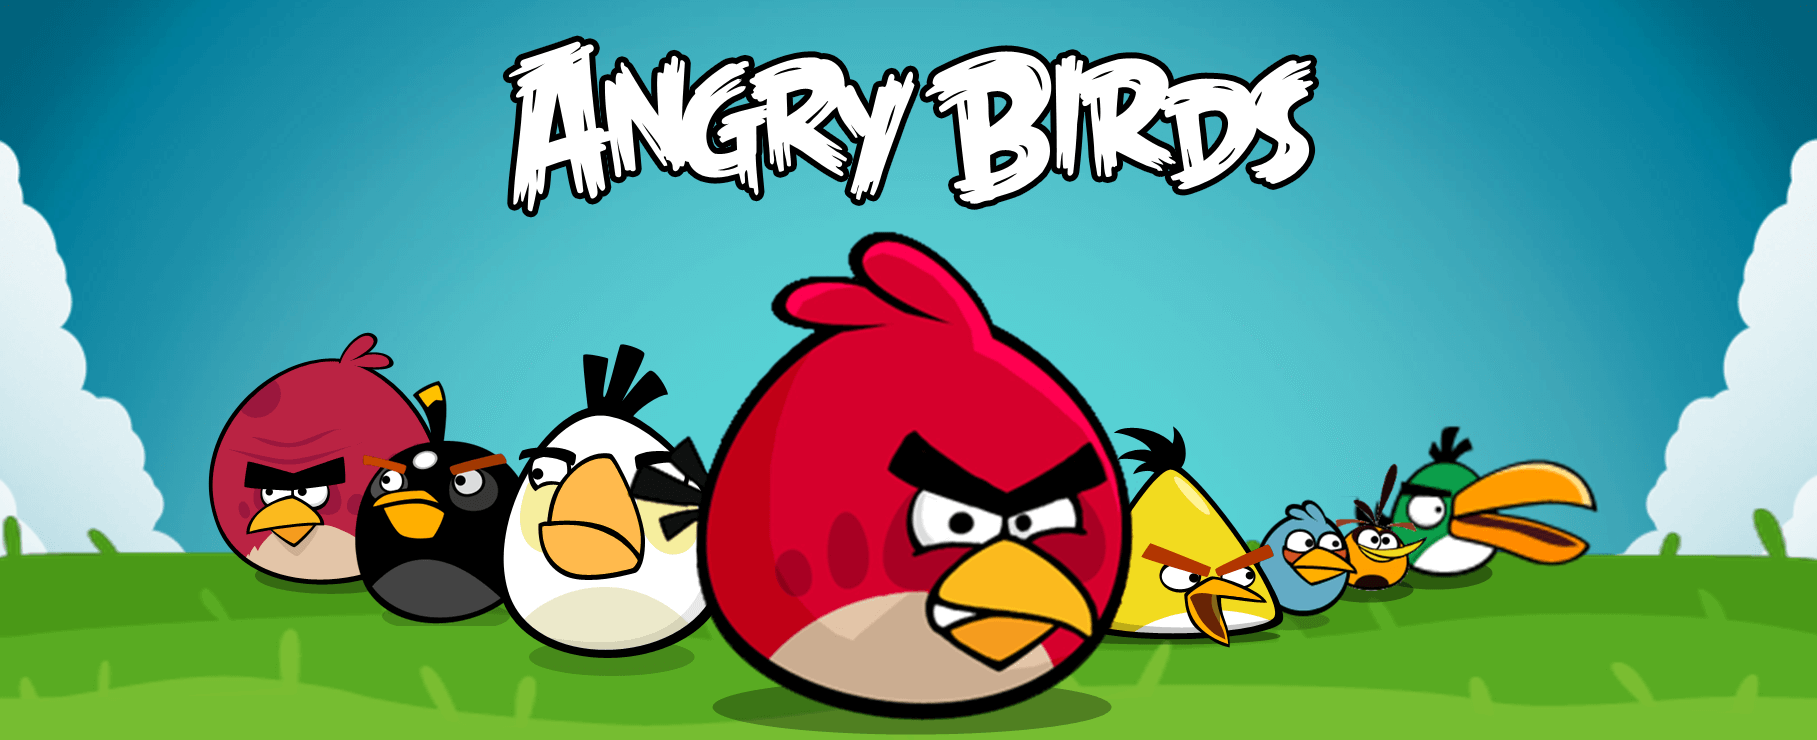 Angry Birds Coloring Book - MarketJS Case Study